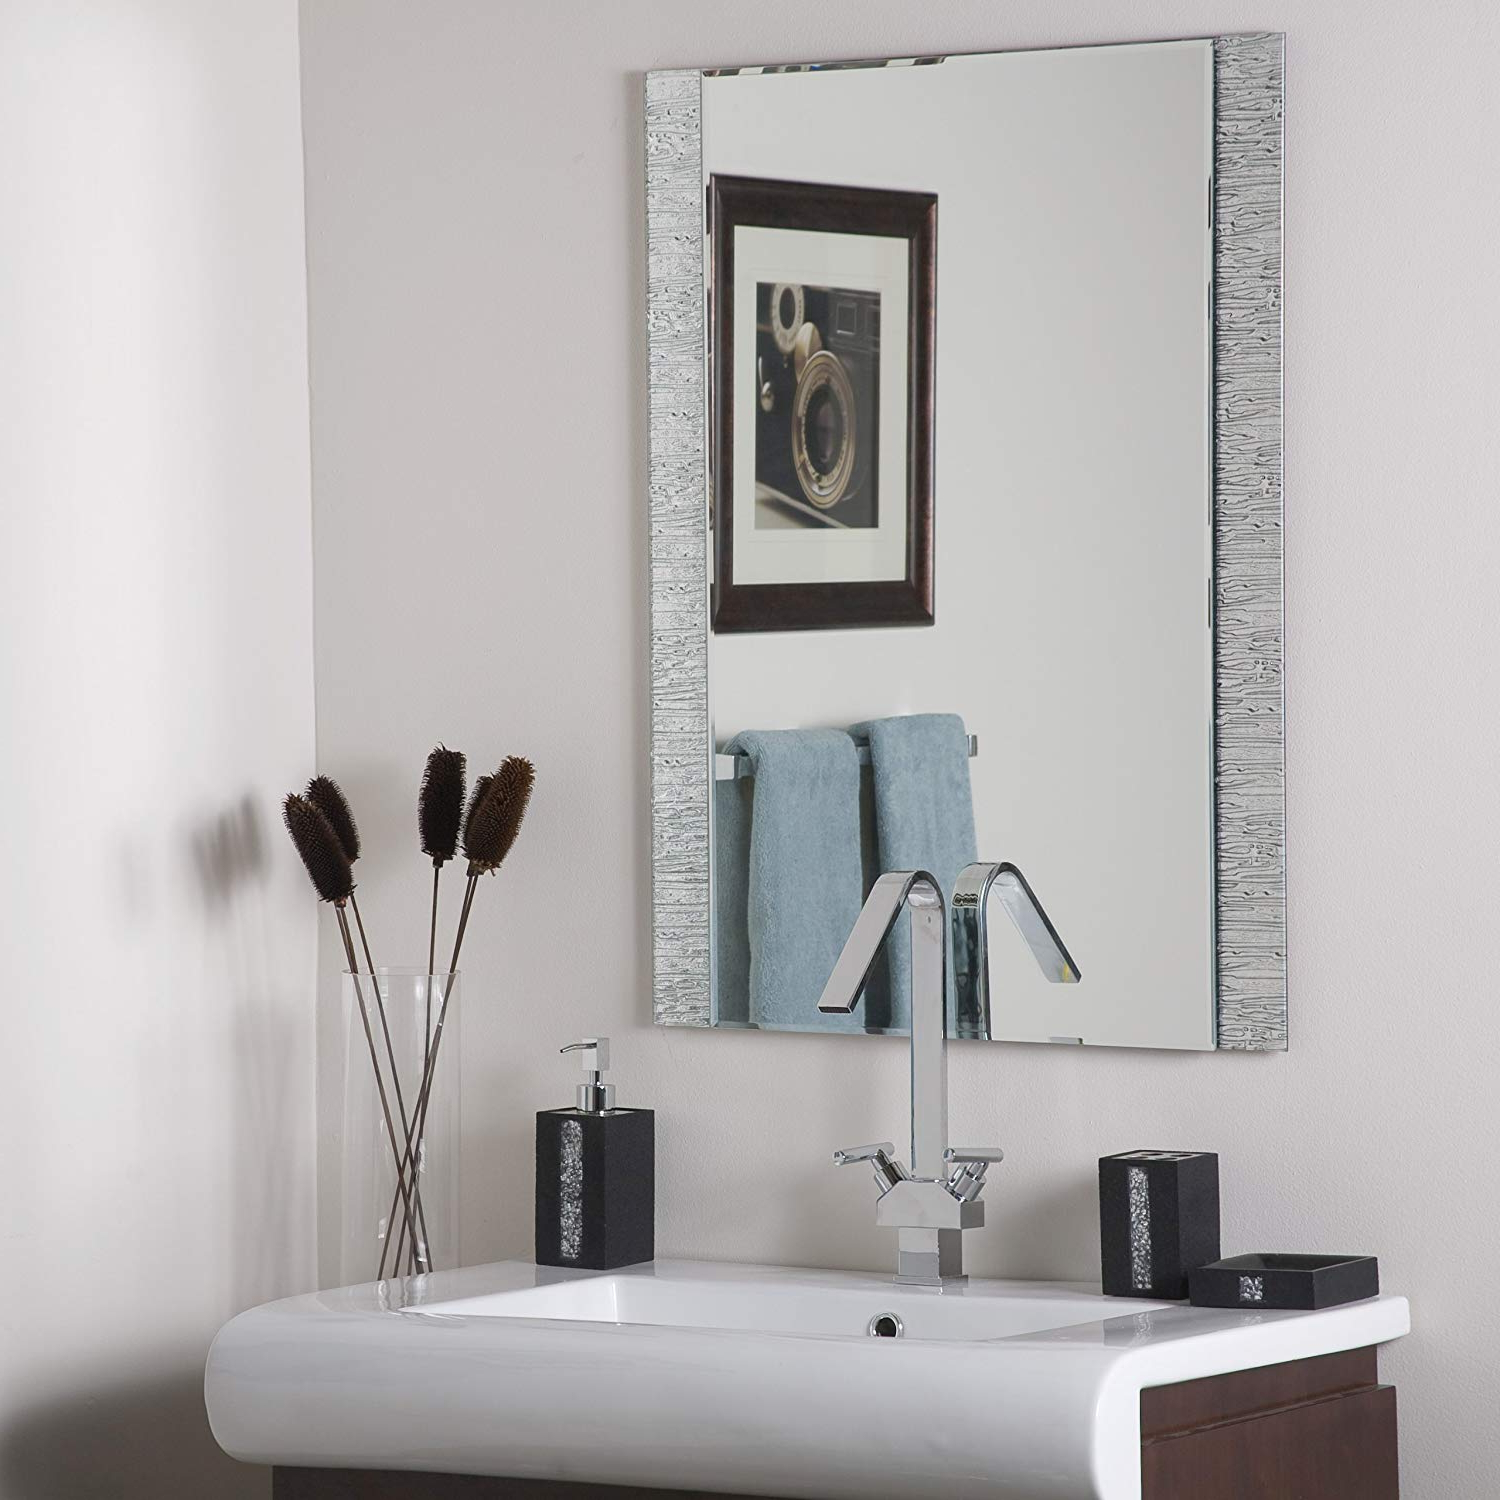 Frameless Molten Wall Mirrors Within Most Recently Released Decor Wonderland Frameless Molten Wall Mirror (View 2 of 20)